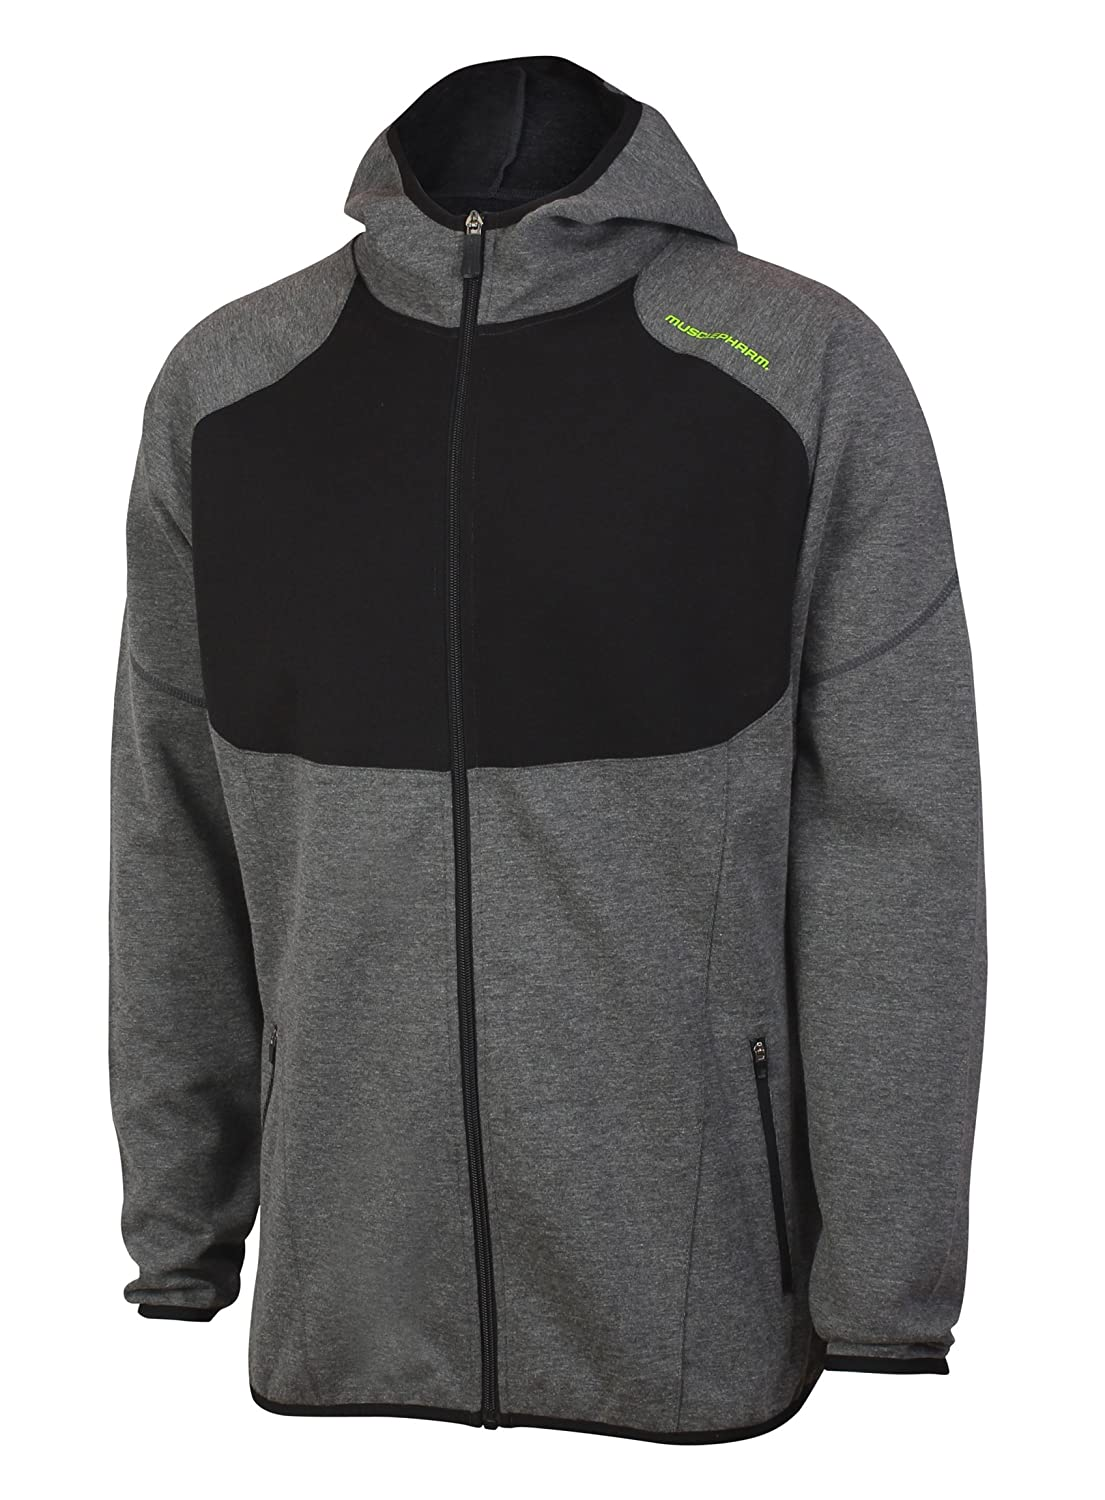 MusclePharm Herren Full Zip Hoodie with Contrast Panels